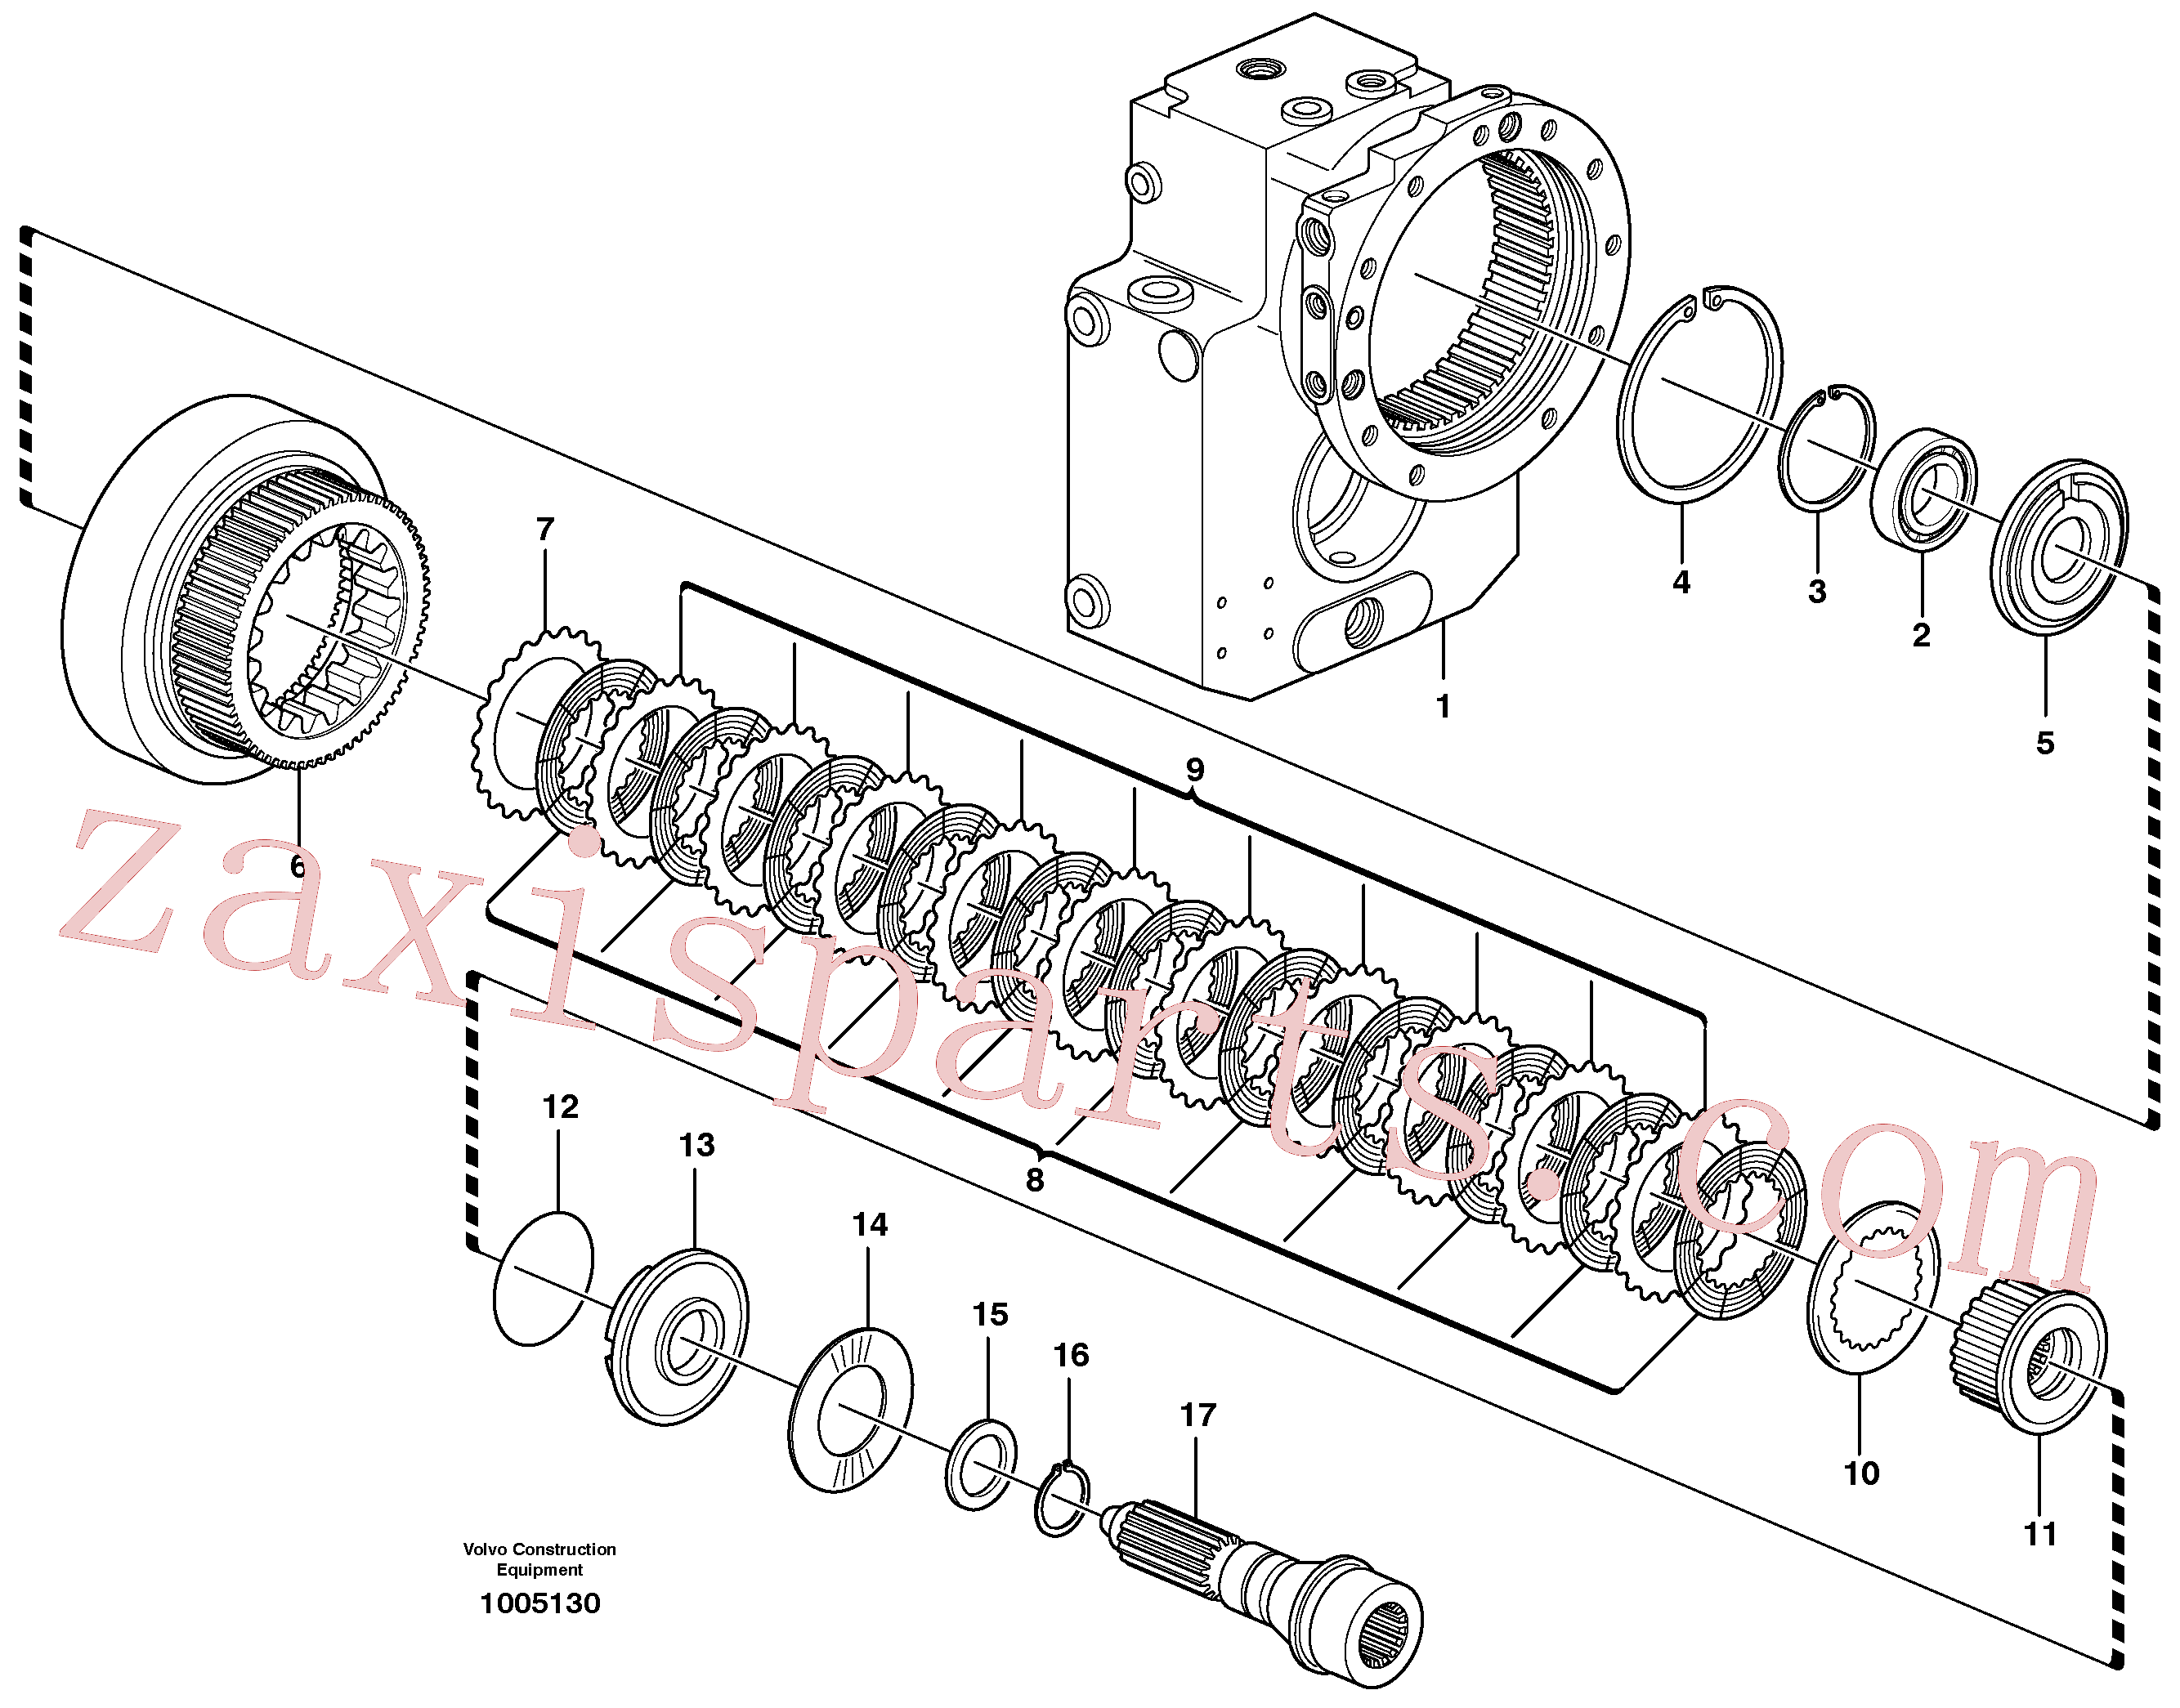 SA8220-02360 for Volvo Transfer case, hydraulic coupling, Rear axle, Clutch(1005130 assembly)